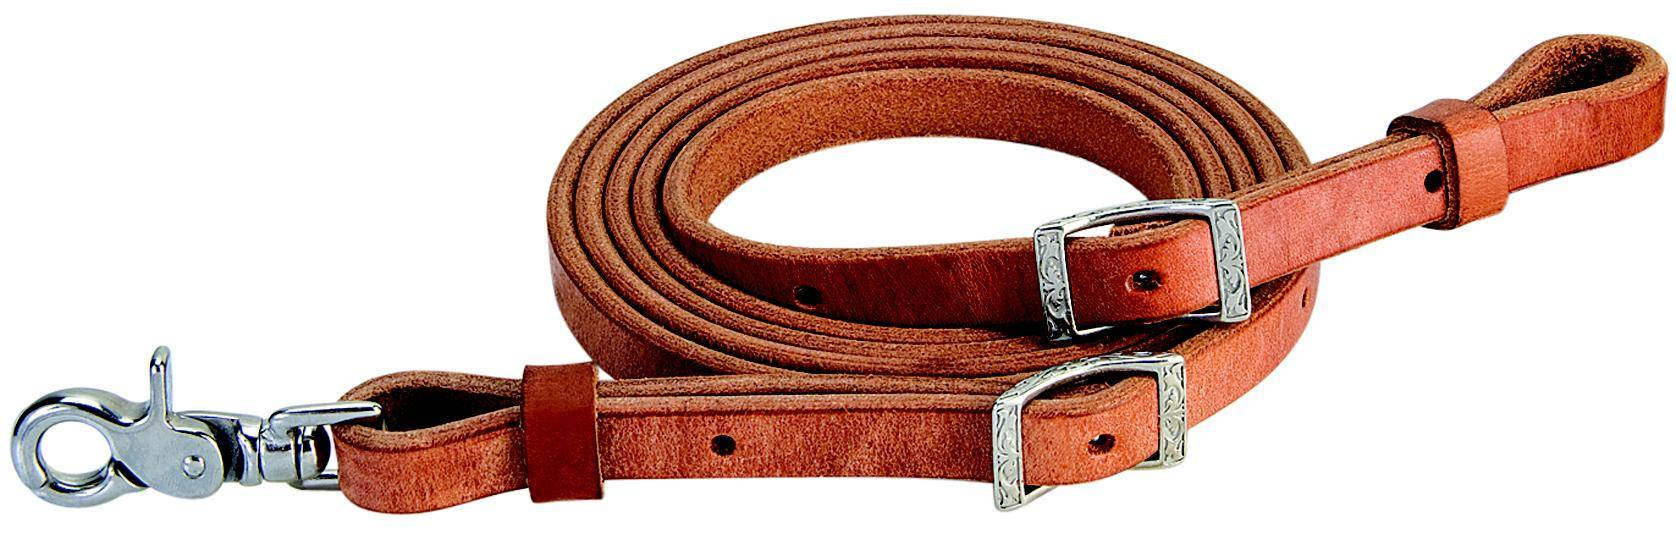 Weaver Leather Leather Roper Rein